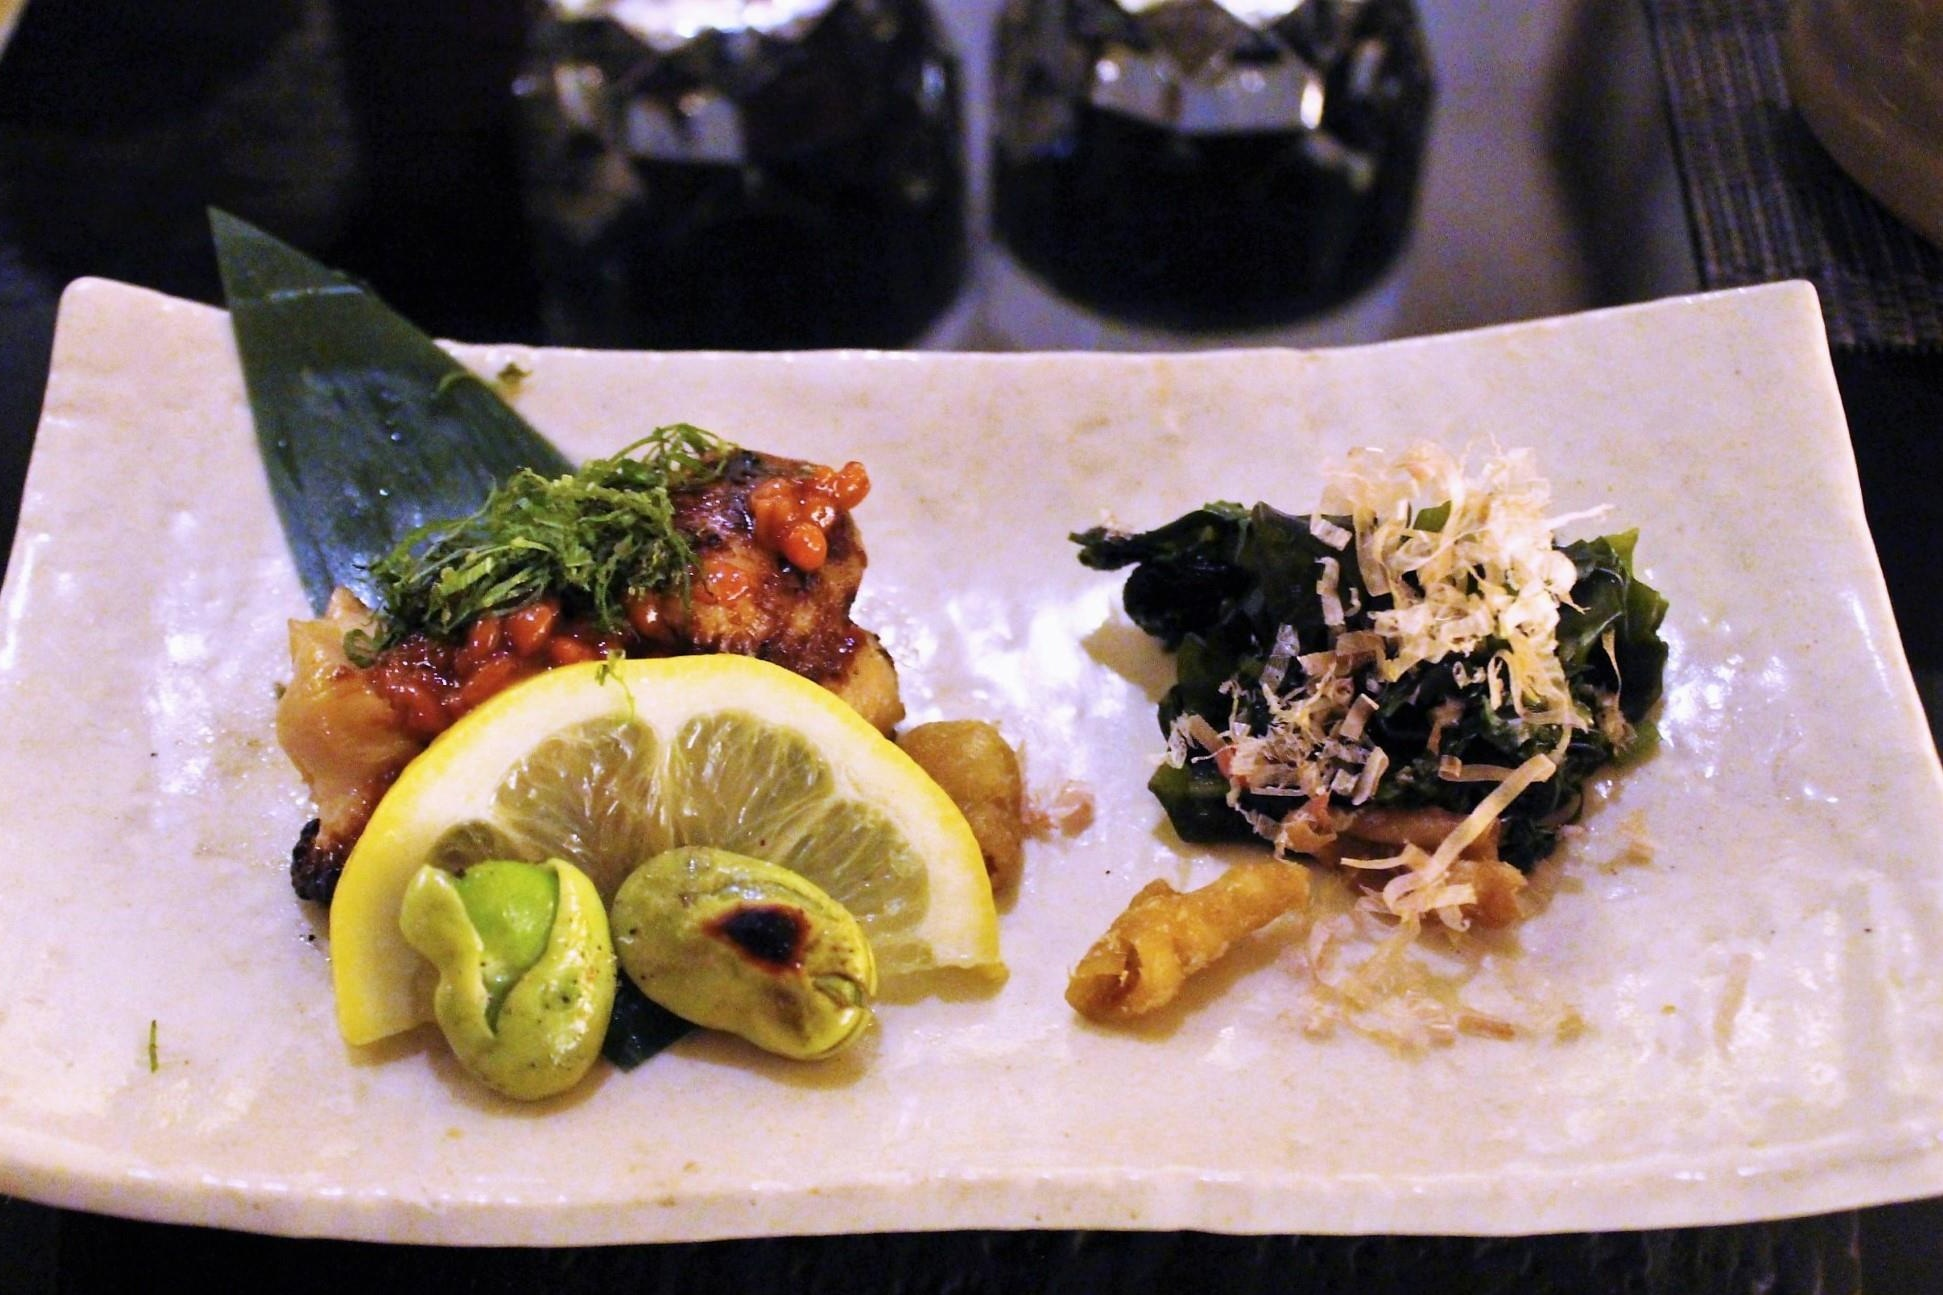 Chicken Thigh with Moromiso and Shiso Leaf; Seaweed, Bonito Flakes, Chicken Skin, and Shungiku Leaf at Torishin